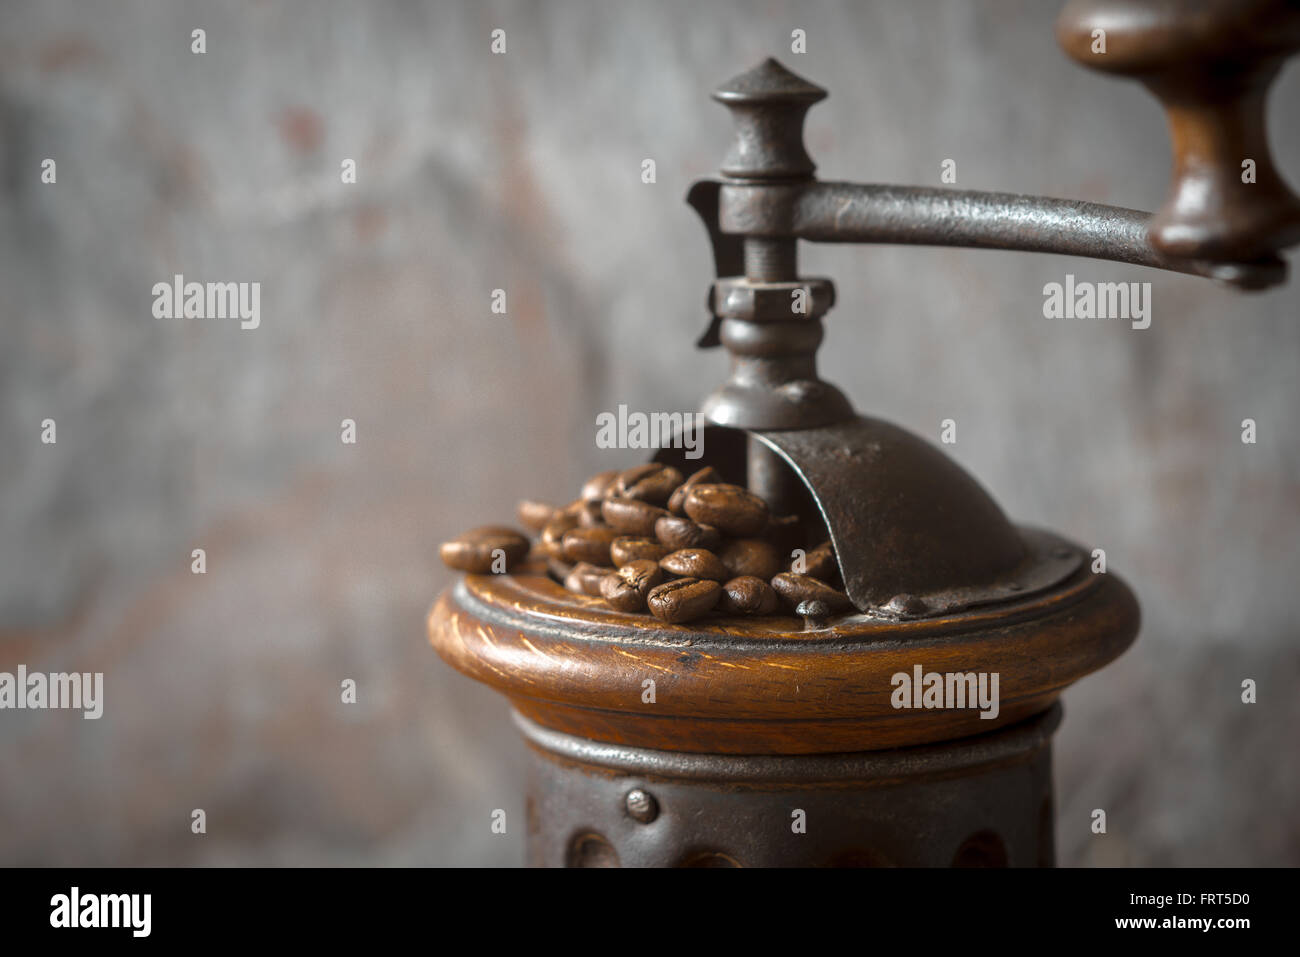 Coffee mill with coffee beans horizontal - Stock Image